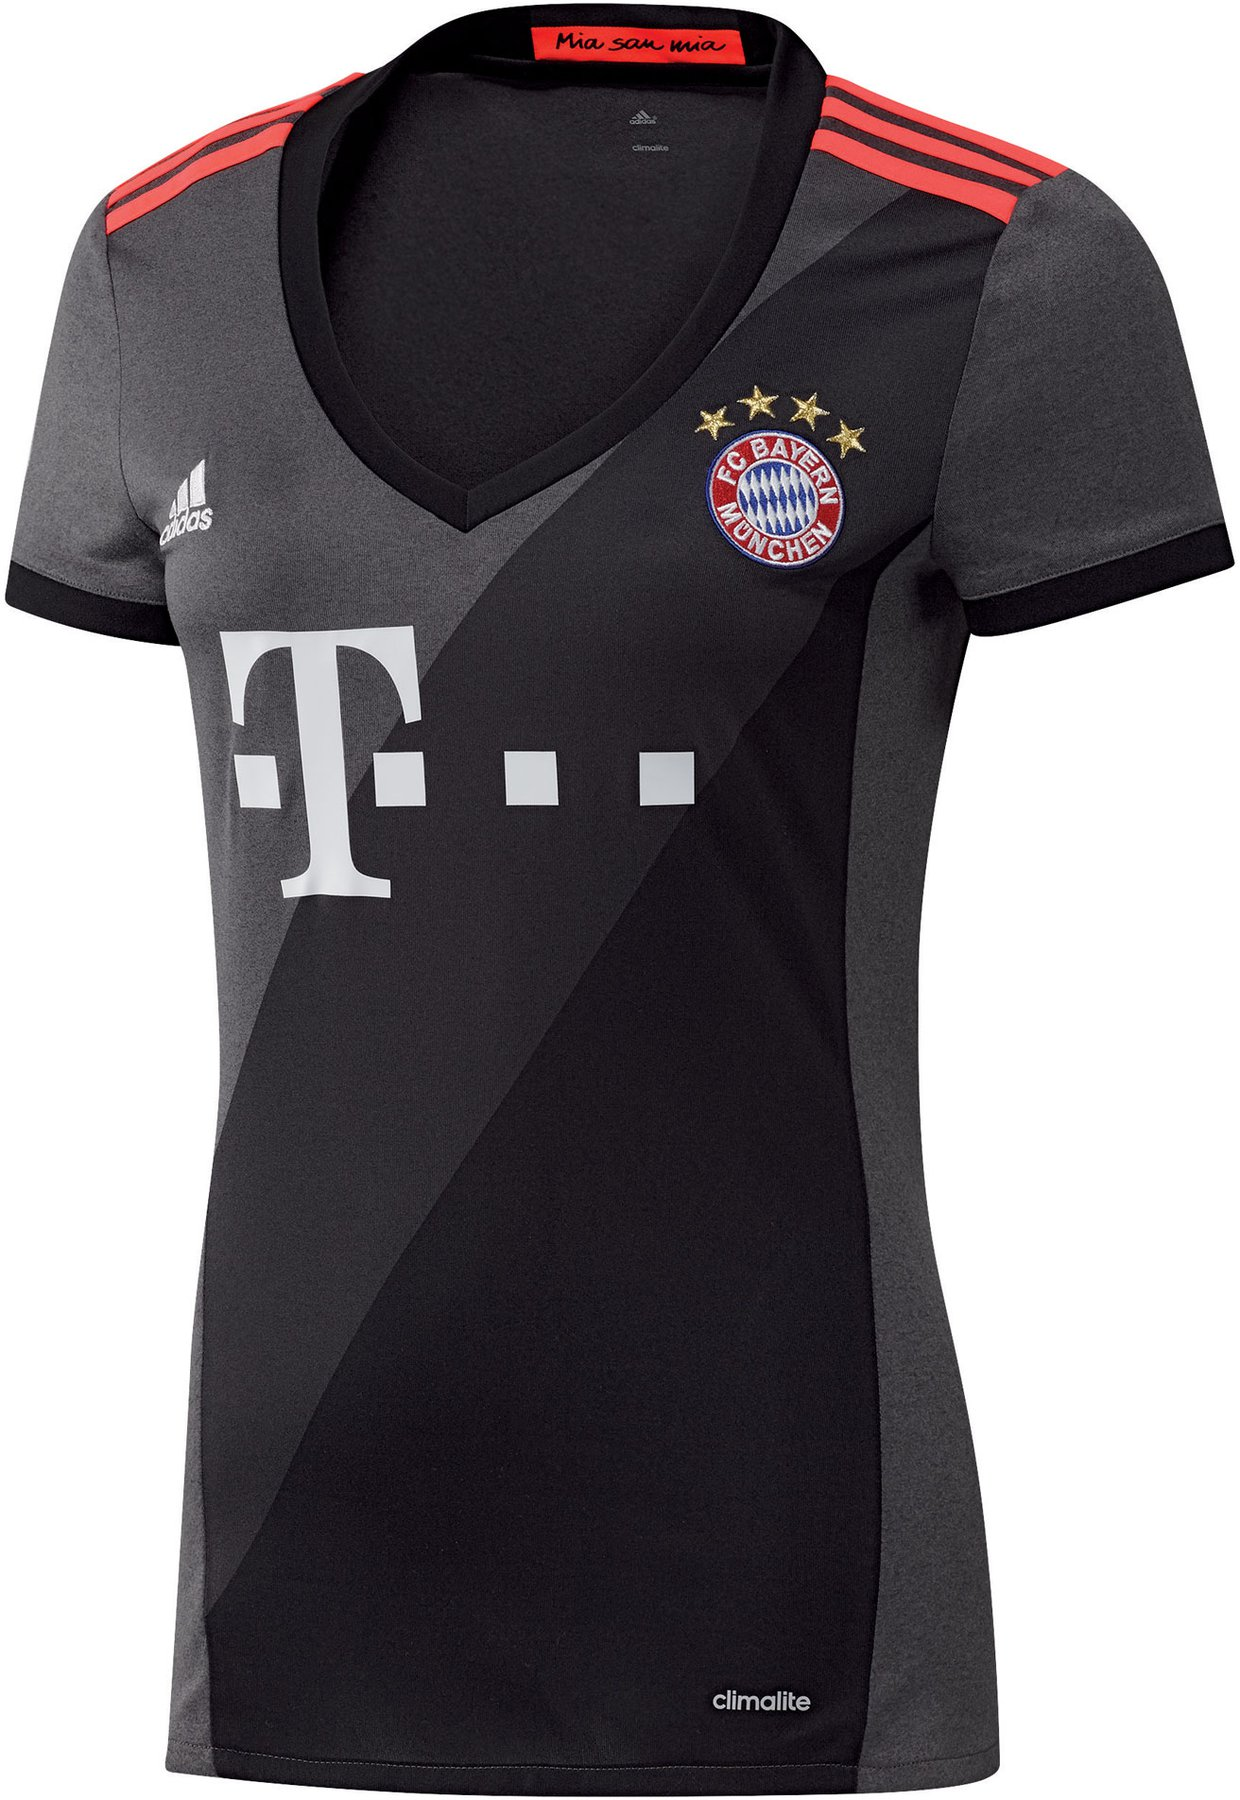 fc bayern adidas away trikot ladies